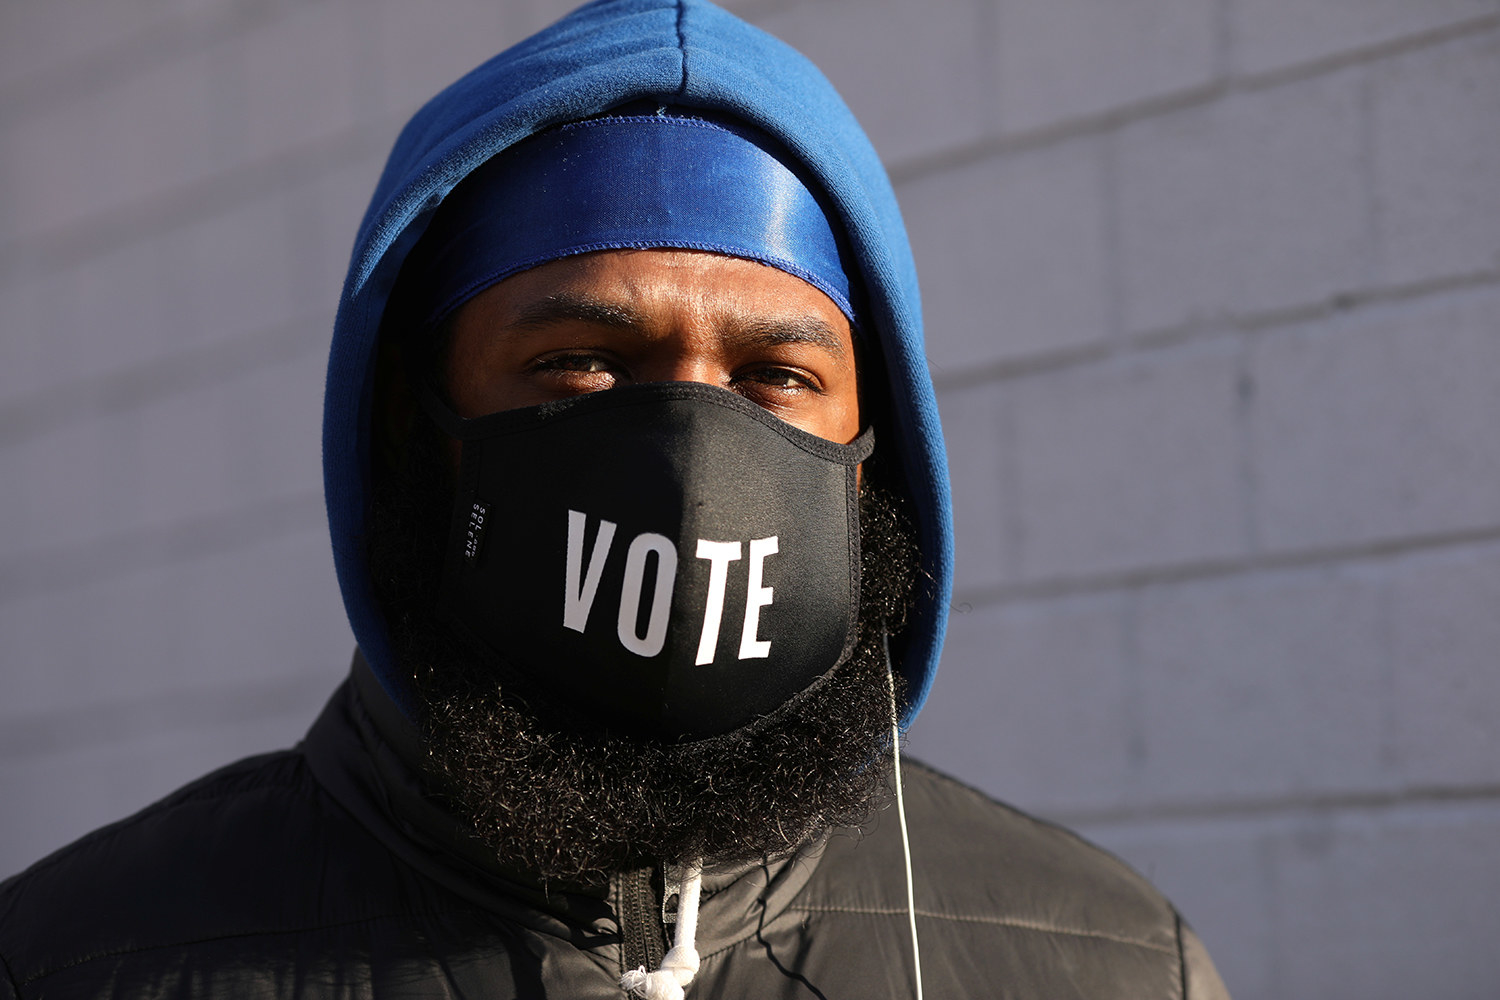 """A Black man in a blue hoodie wears a face mask that says """"Vote"""""""